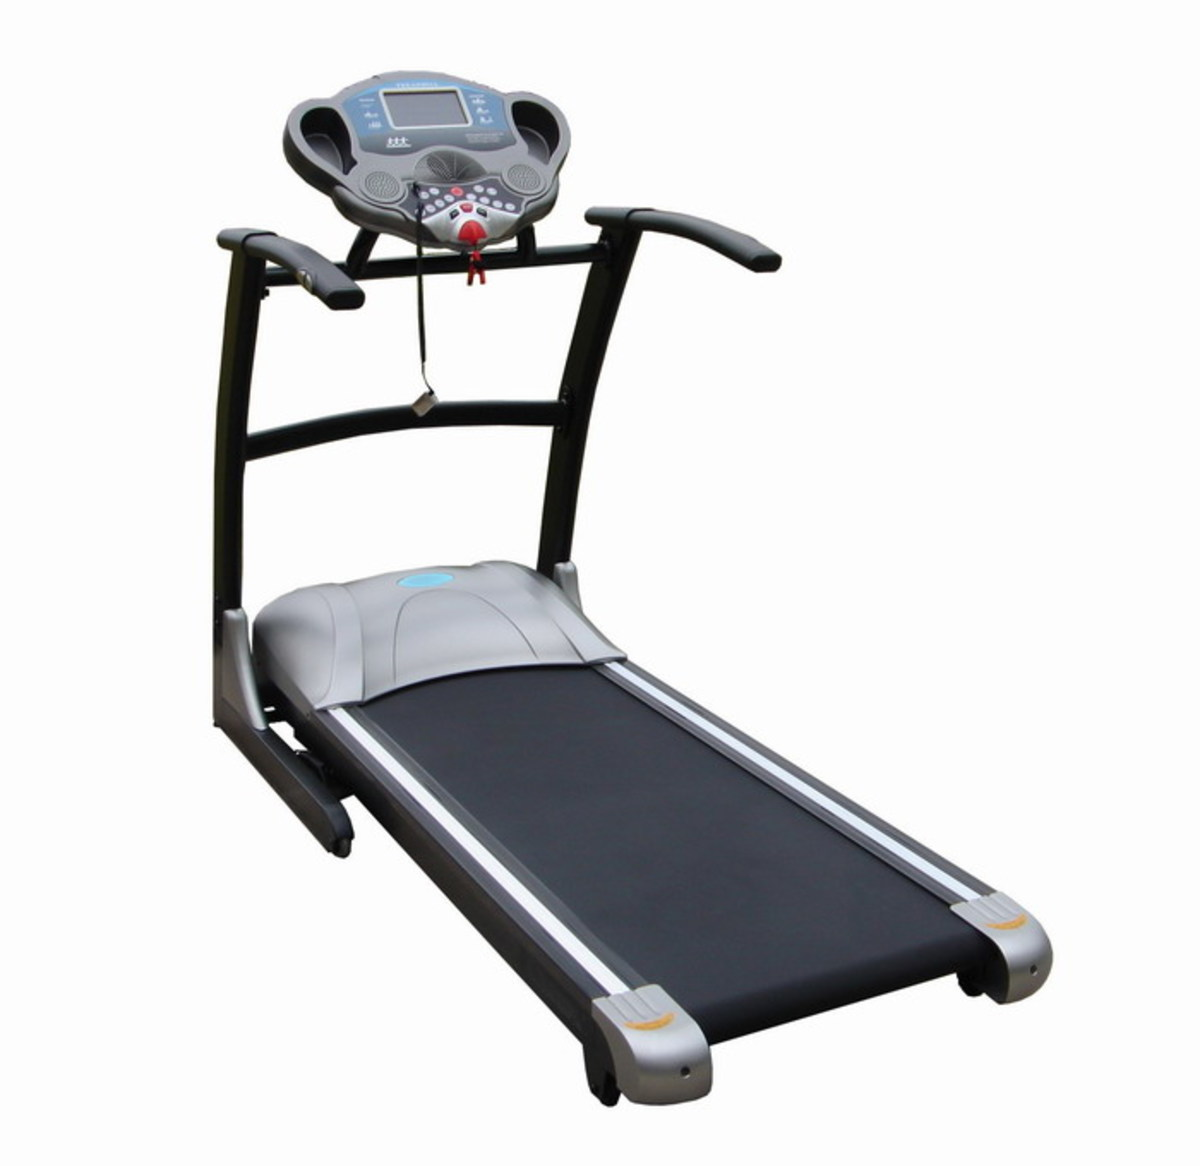 Choosing the Best Home Treadmill the Top 5 Features CalorieBee